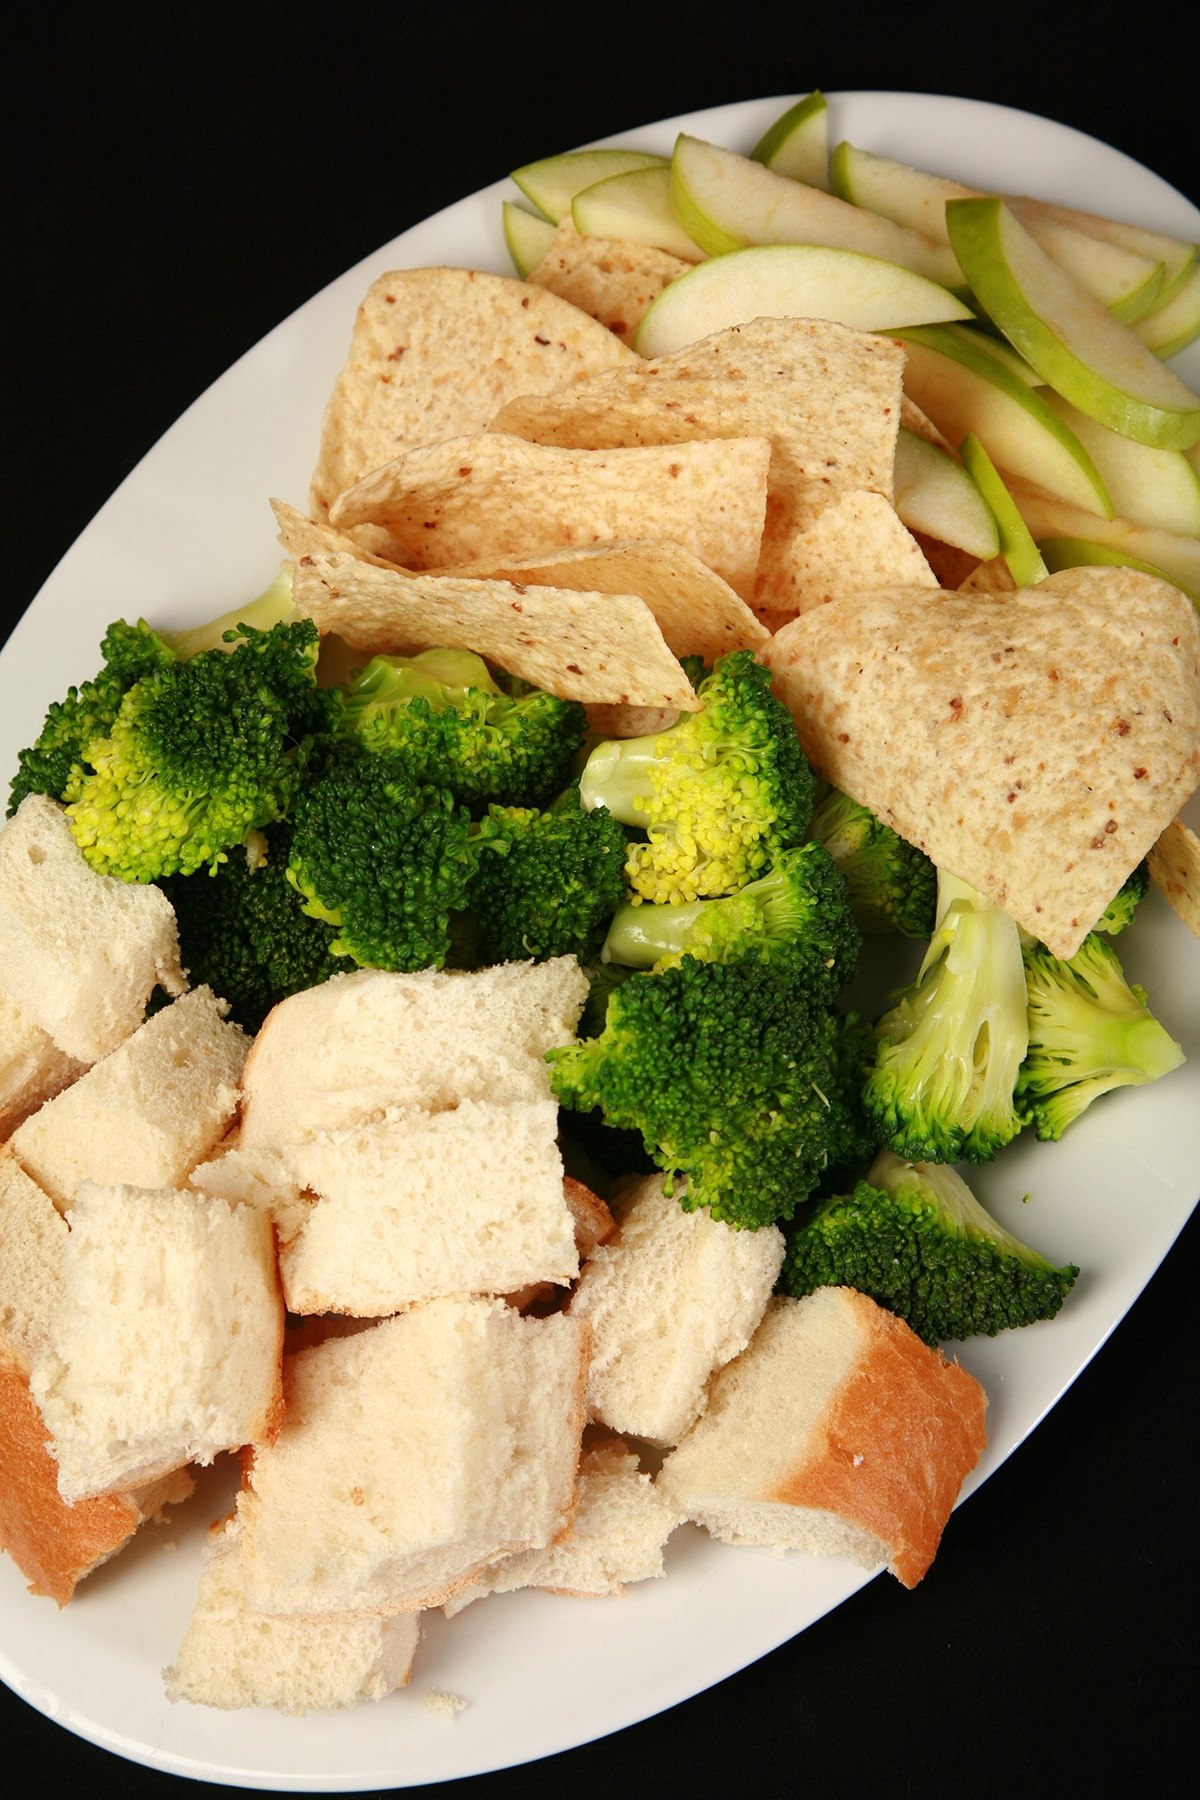 A large platter of bread cubes, broccoli, torilla chips, and apple slices.